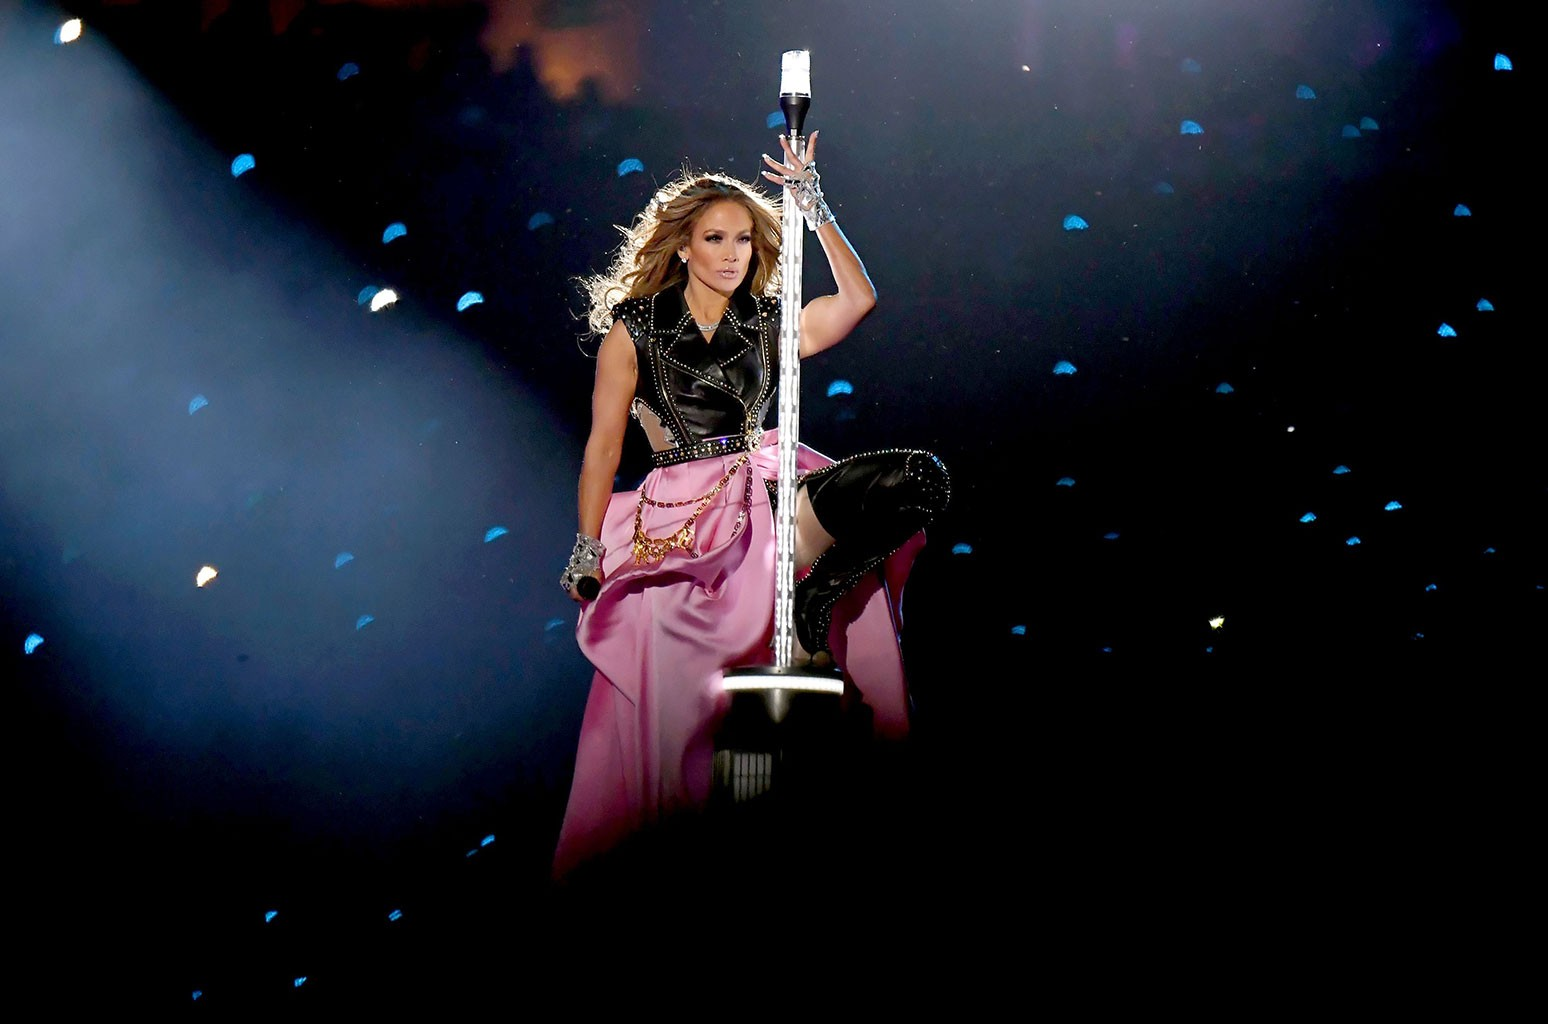 05-jennifer-lopez-super-bowl-halftime-show-2020-billboard-1548.jpg